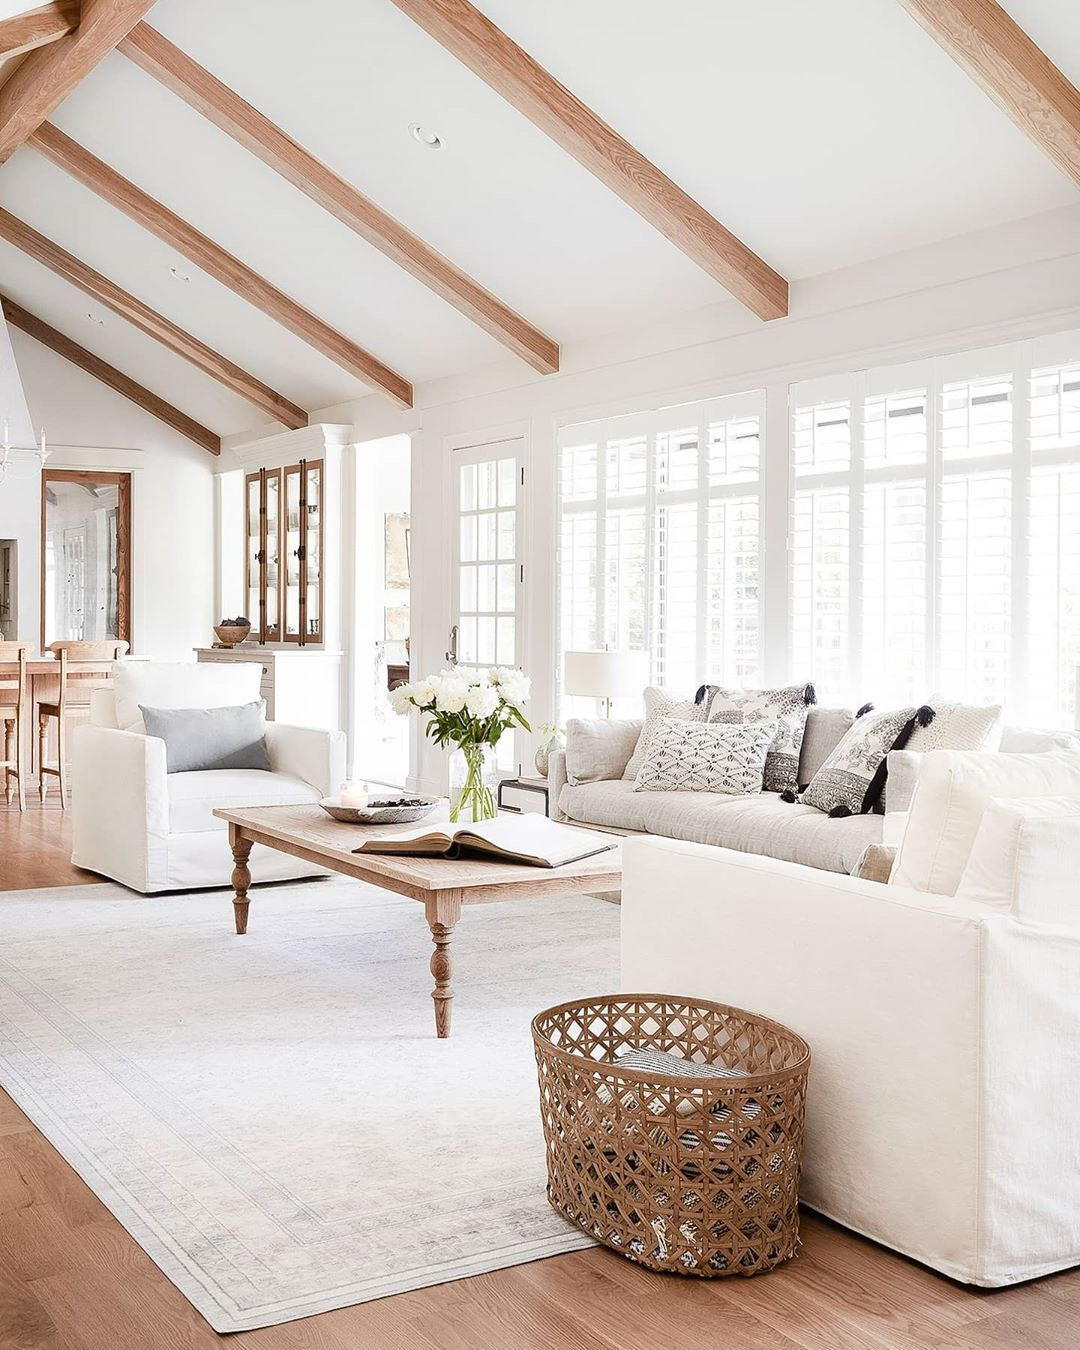 Homebody On Instagram Old Or Classic This Design Without A Doubt Has A Much More Rustic Vintage In 2020 Living Room Table Sets French Country Family Room Home